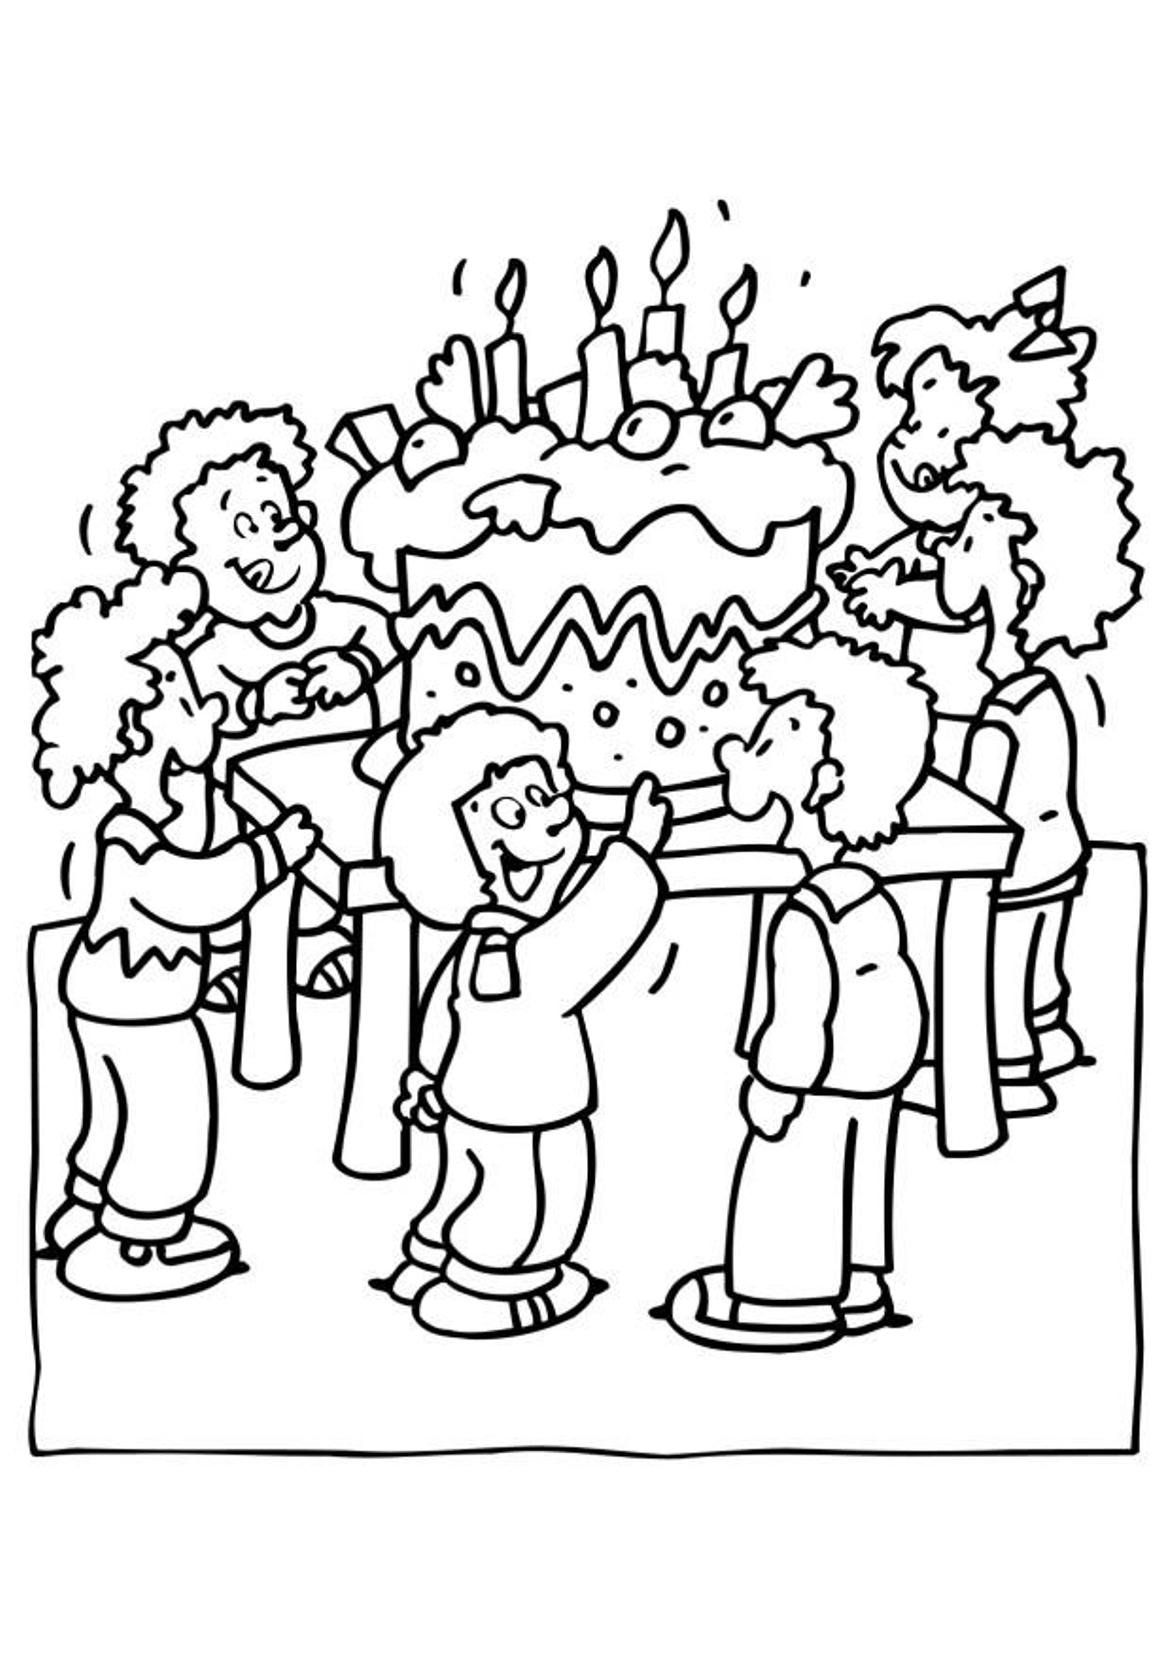 1176x1663 Party Birthday Coloring Pages For Kids Birthday Coloring Pages